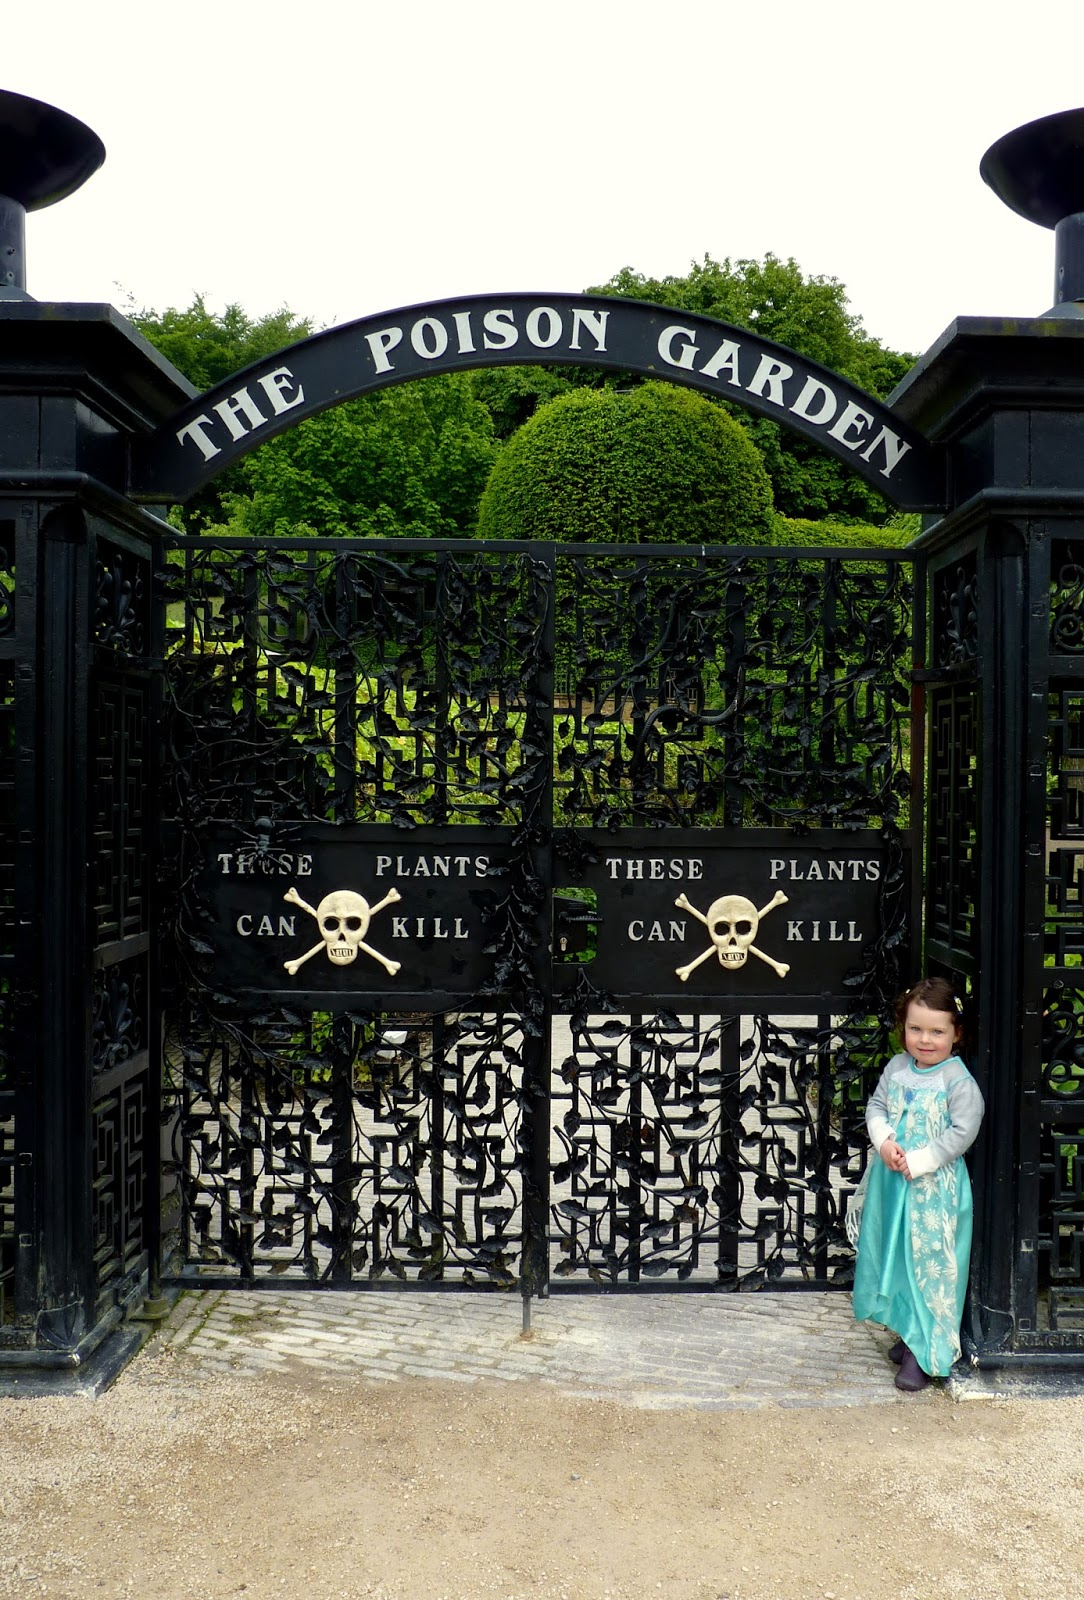 Yikes, the Poison Garden! Be careful, the Wicked Queen will be around here somewhere!